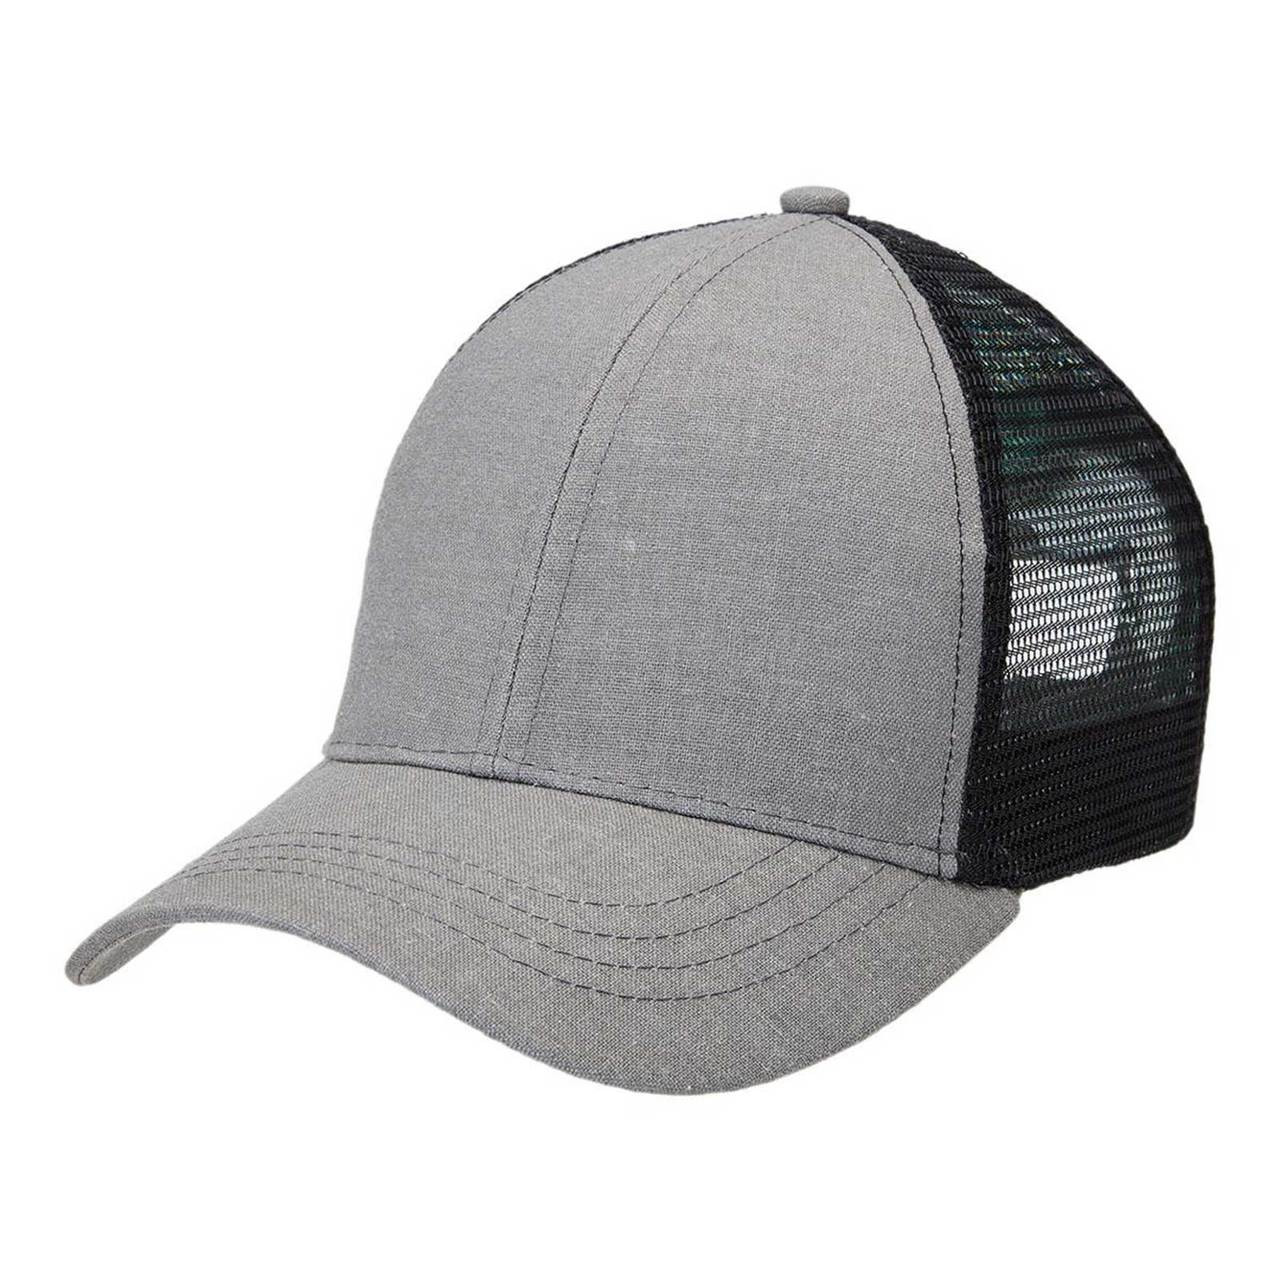 5dc303db214 Buy wholesale plain hemp trucker caps online bulk discount blank apparel  jpg 1280x1280 Blank trucker hats